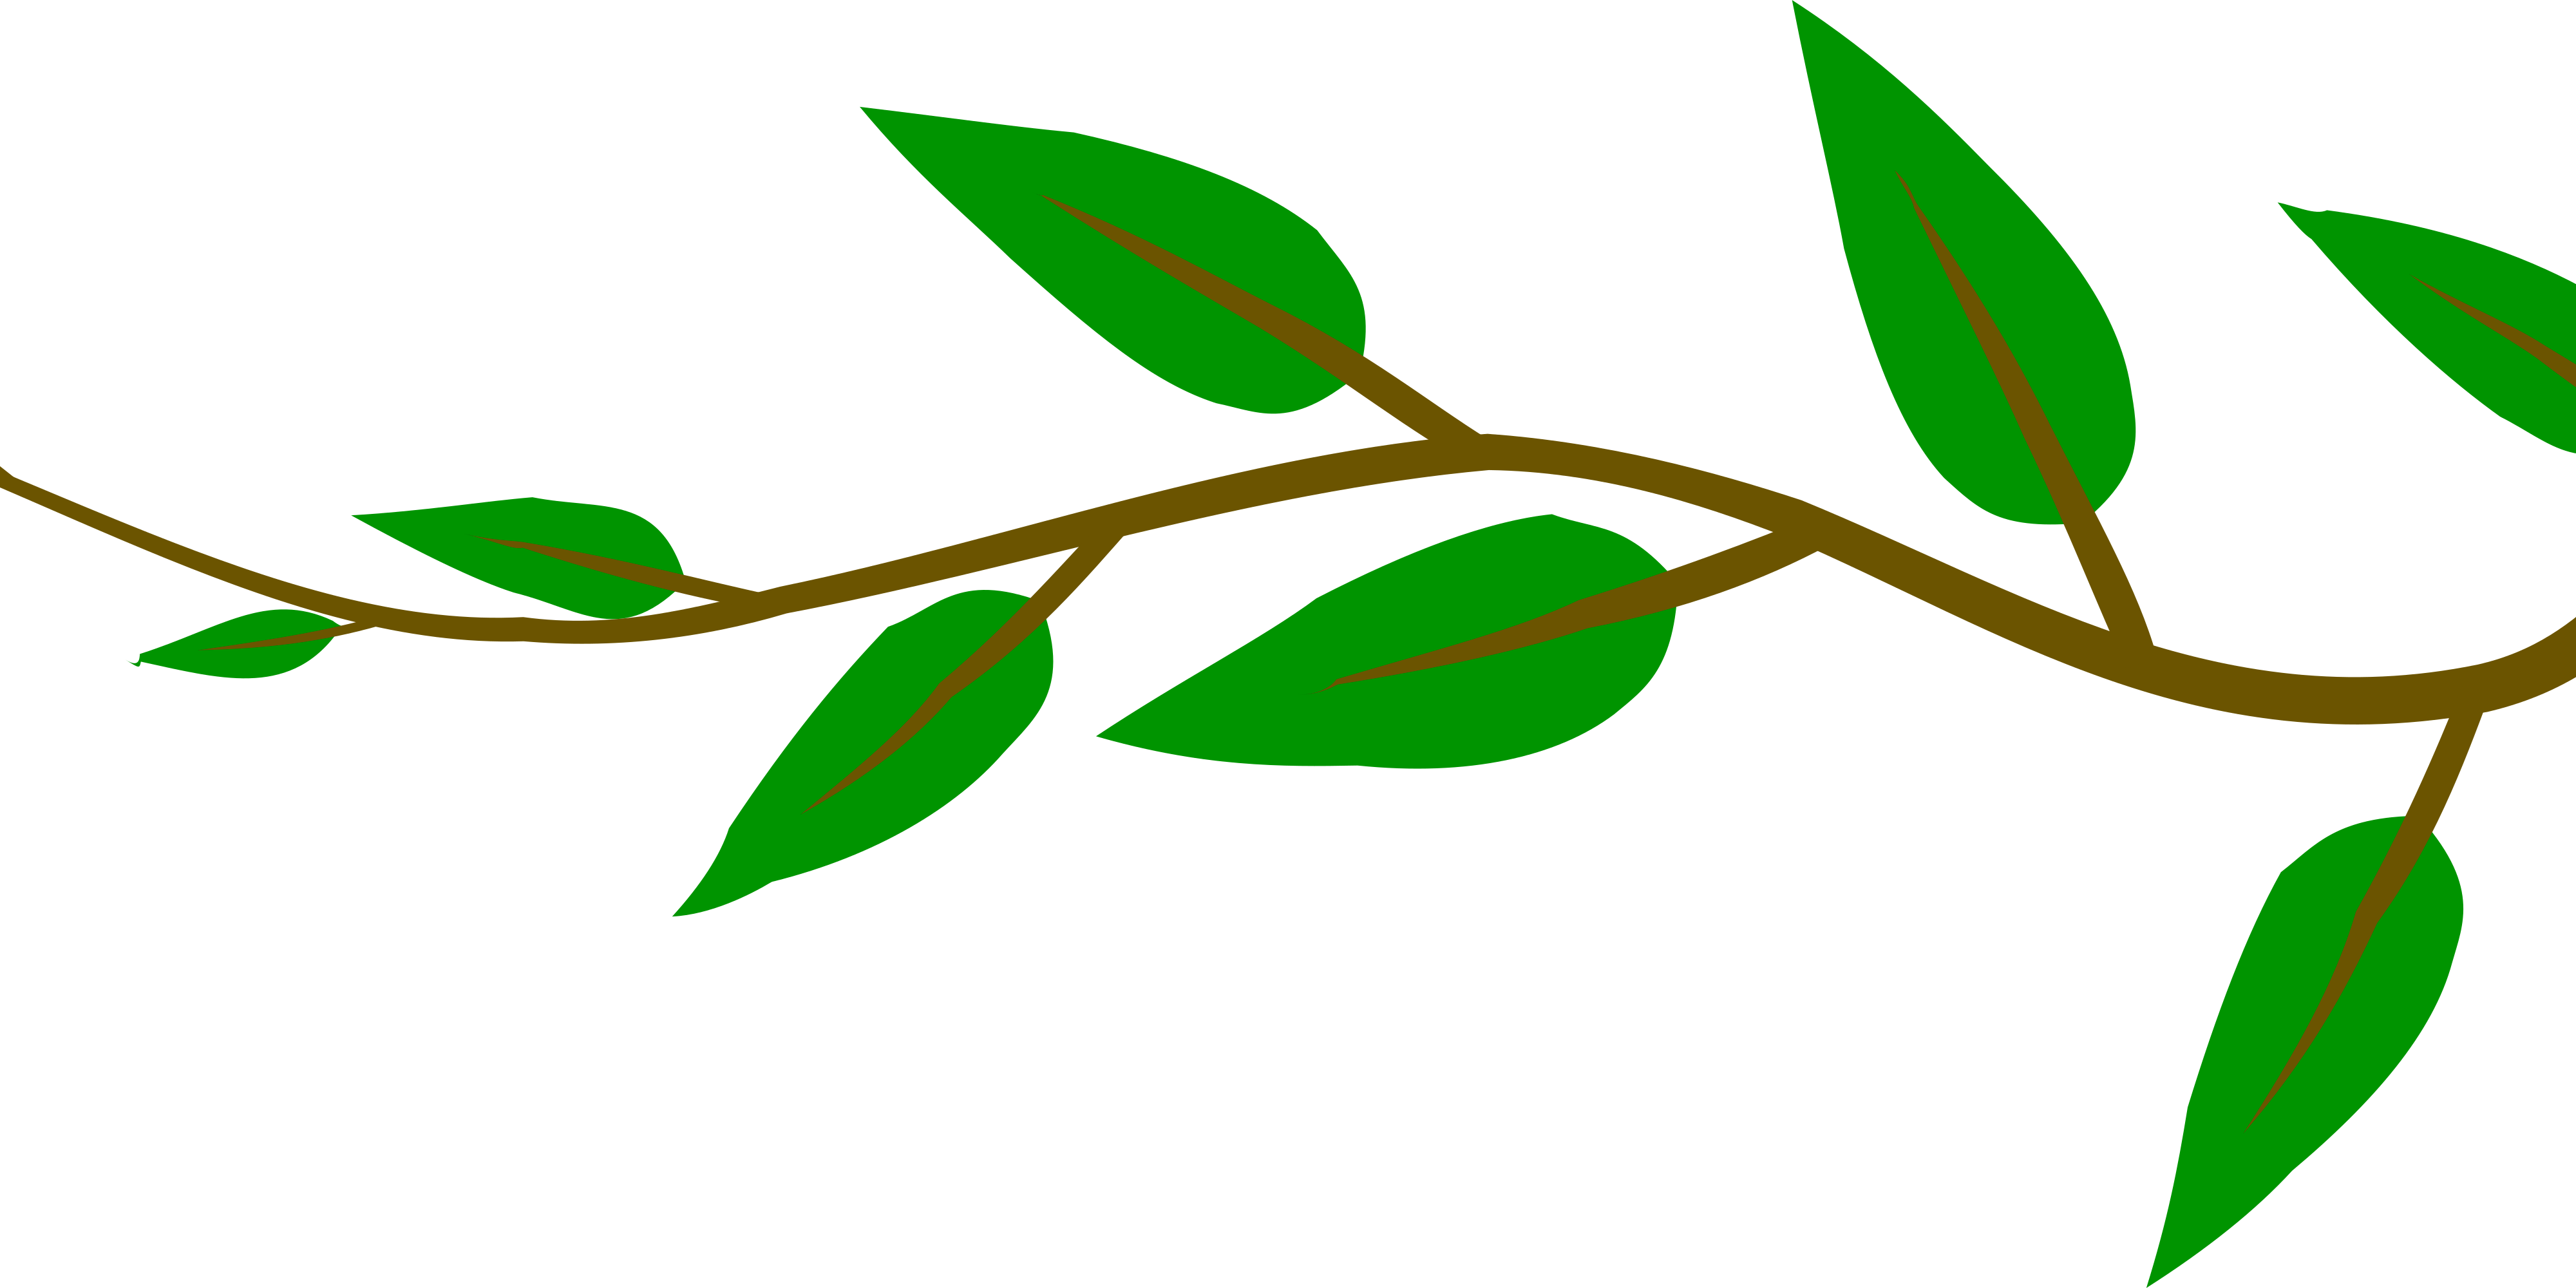 Cartoon tree branch png. Small with green leaves